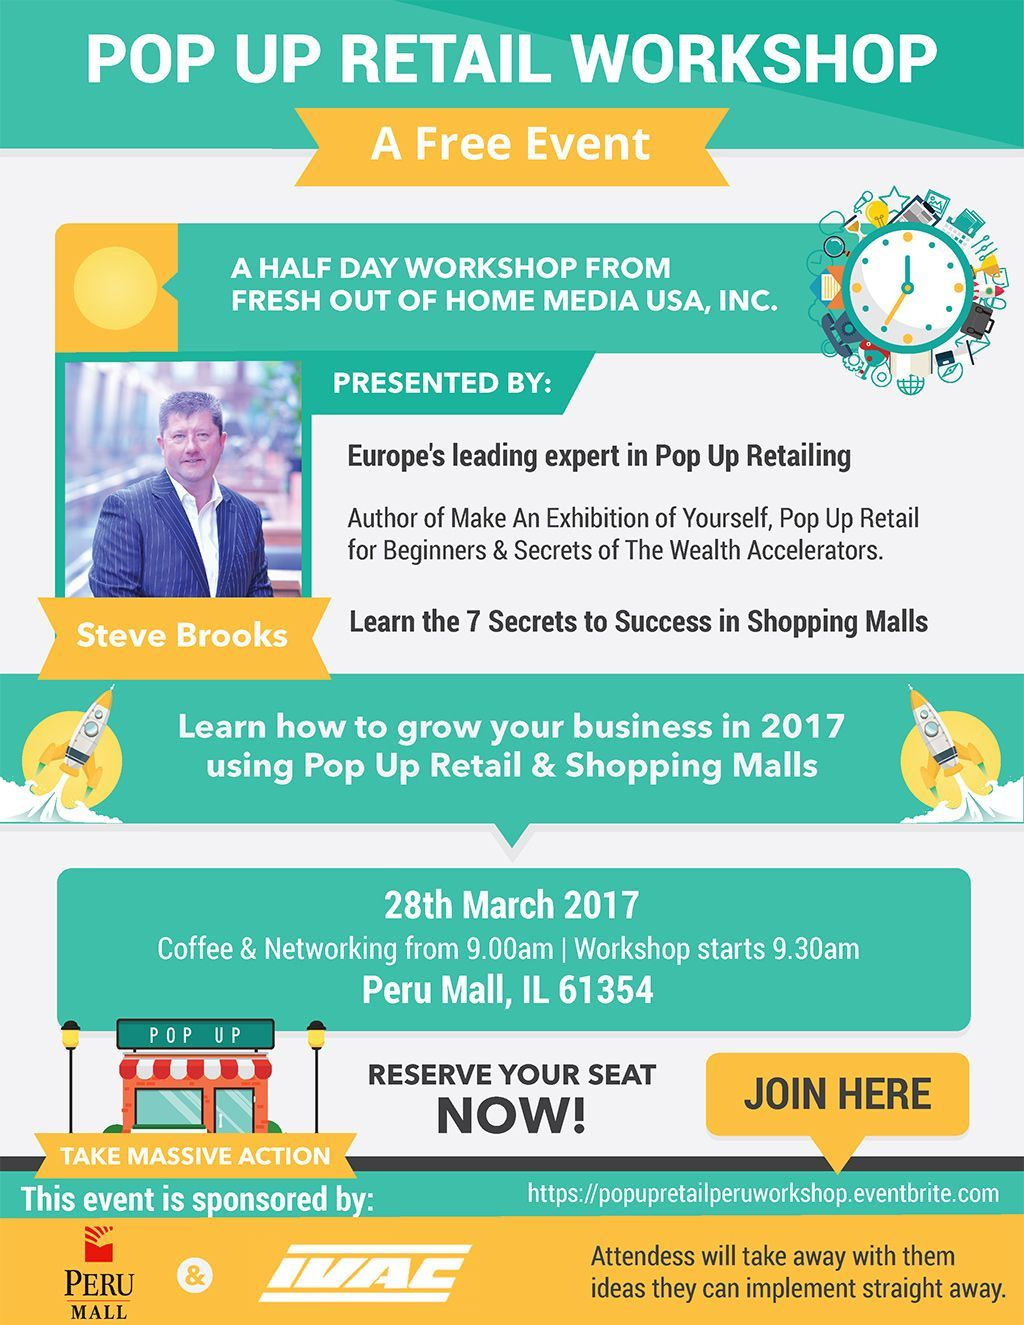 free pop up retail workshop event March 28, 2017